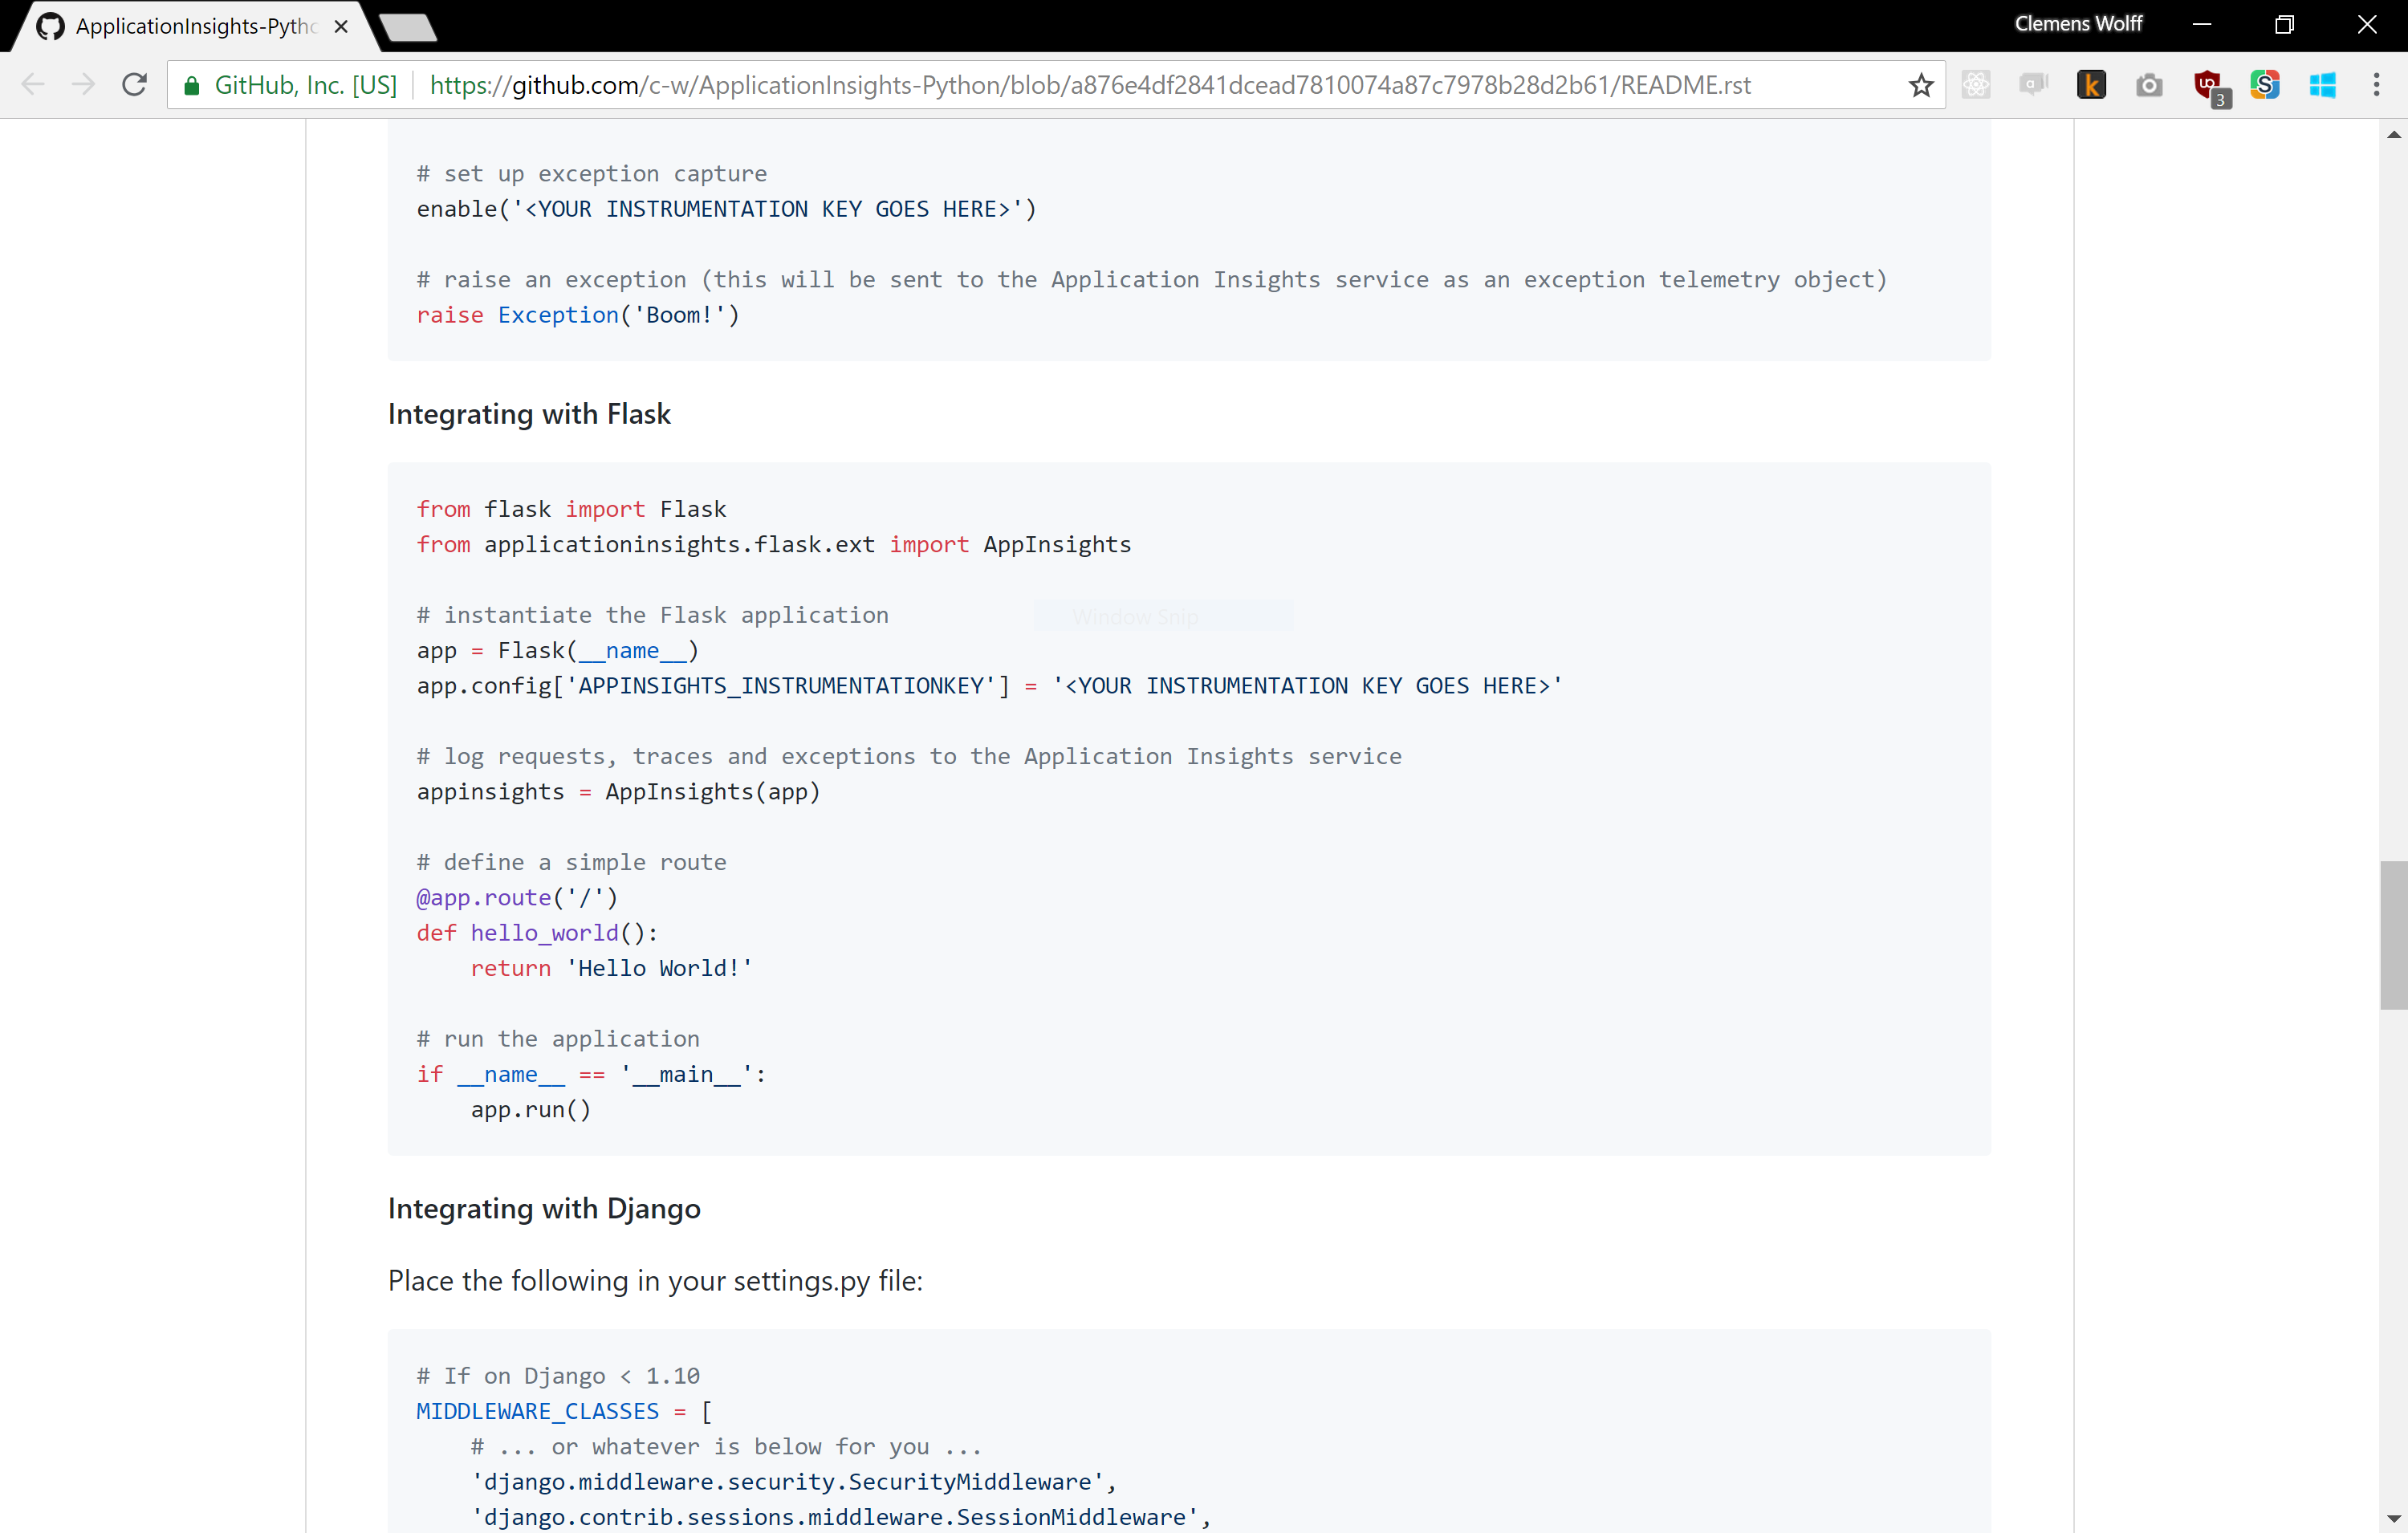 Screenshot of README after this pull request